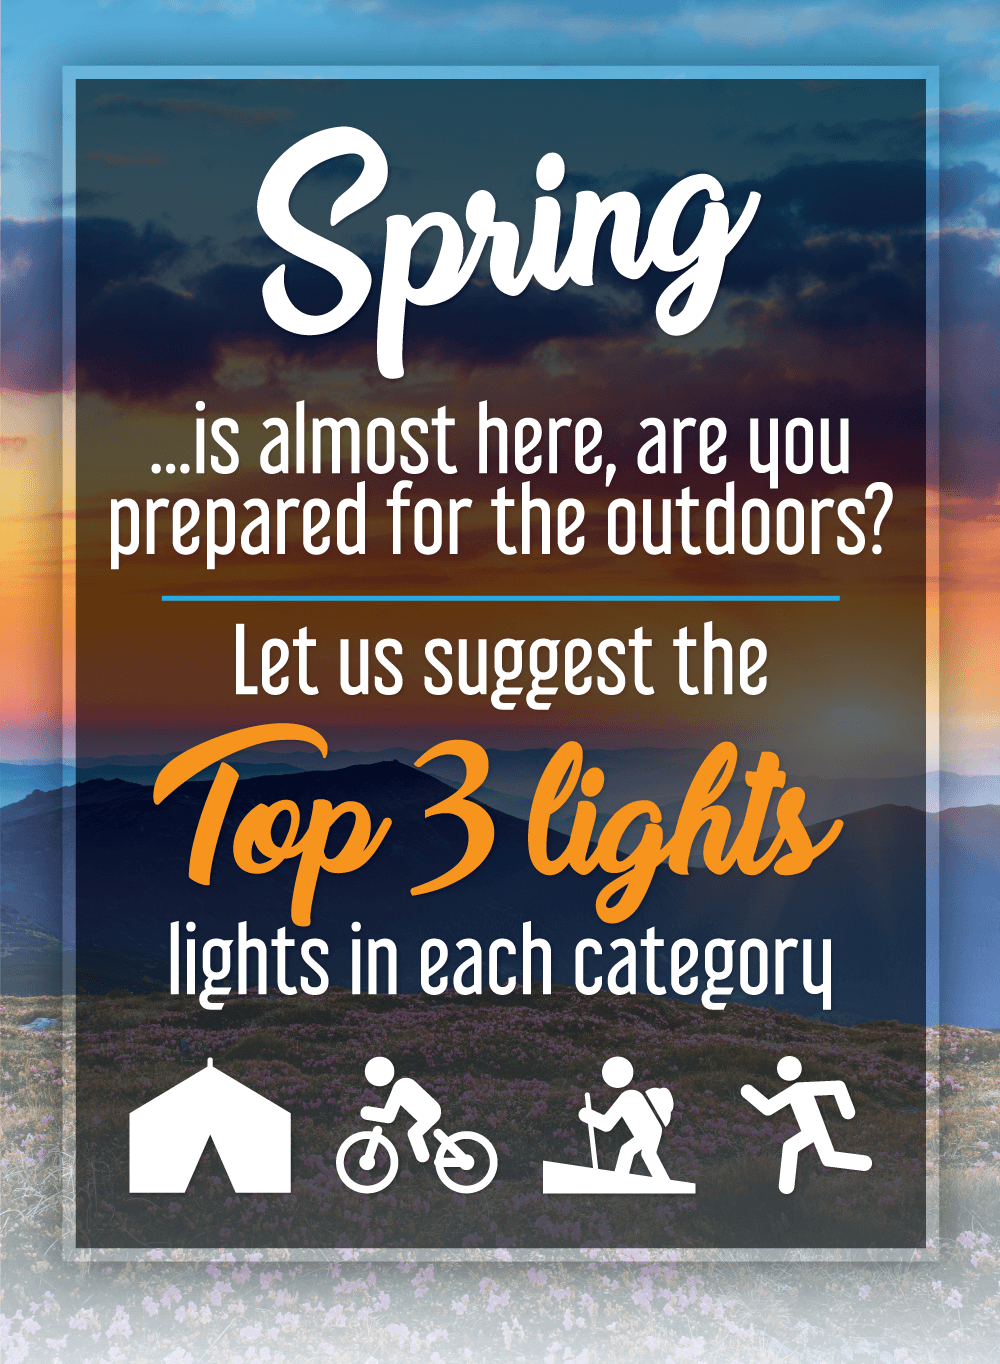 AdHigh Quality Lighting for all Outdoor Enthusiasts. Save Now!